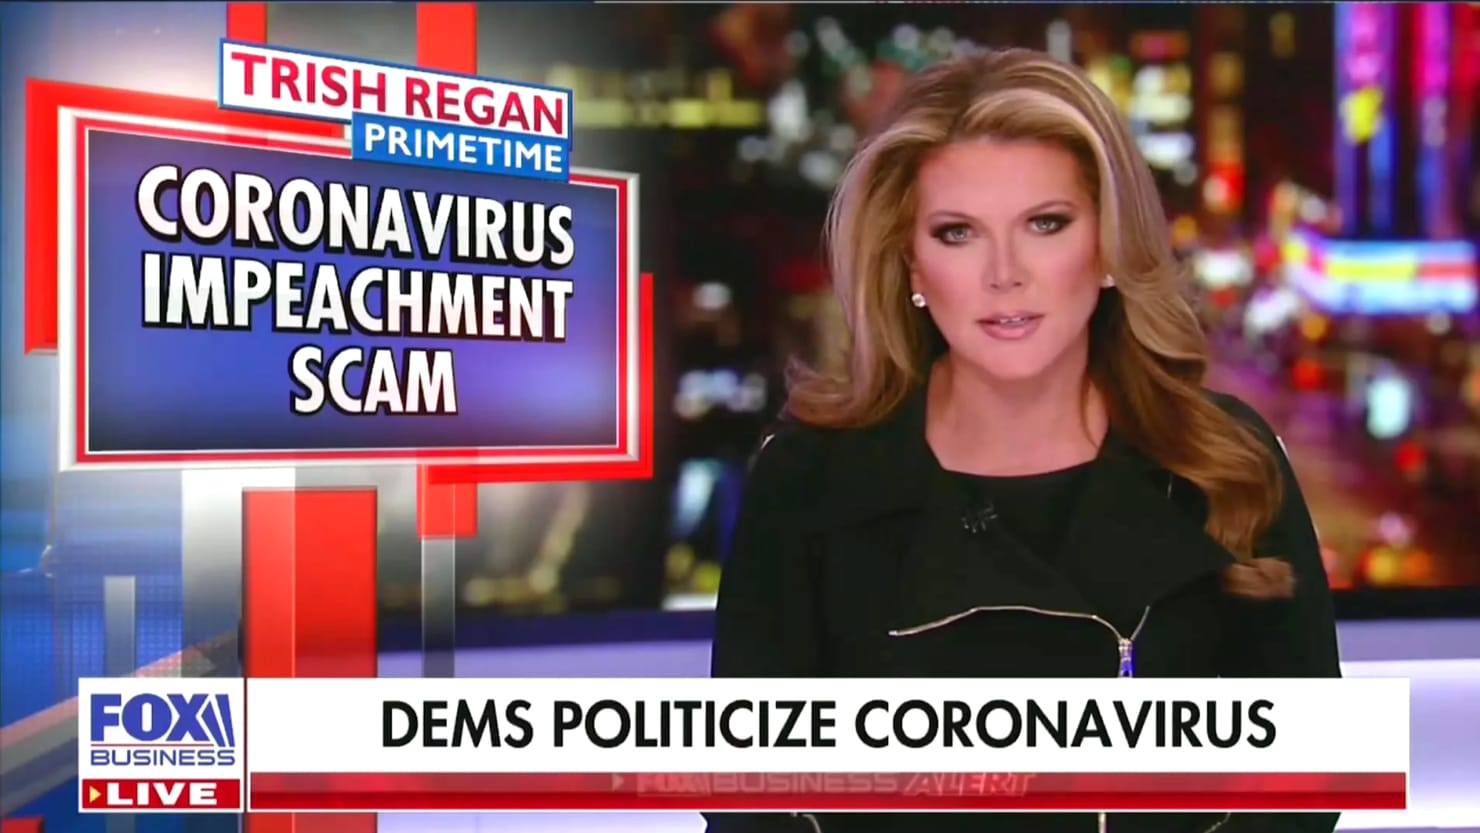 Fox Business Ditches Trish Regan After Coronavirus 'Impeachment Scam' Rant